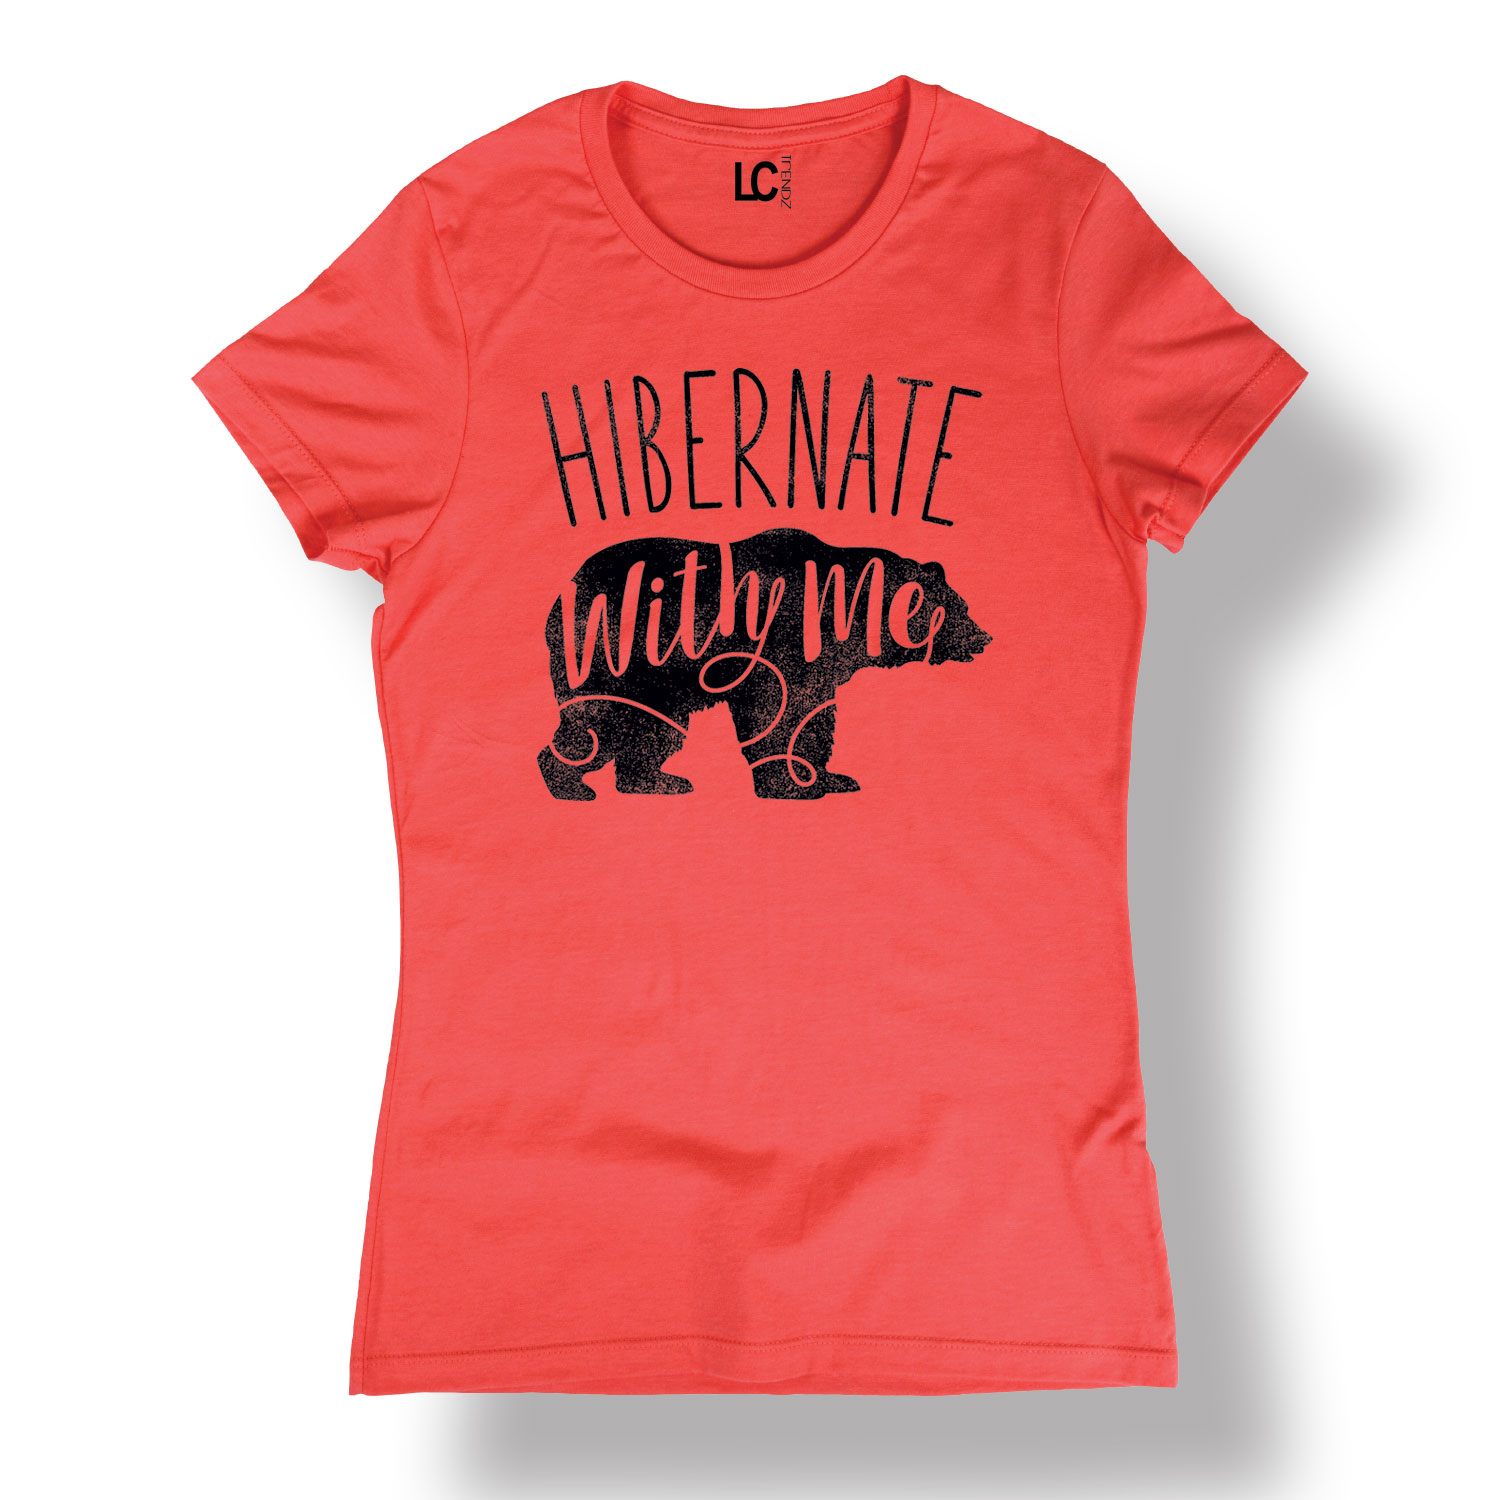 Cute Shirts With Sayings - T Shirts Design Concept